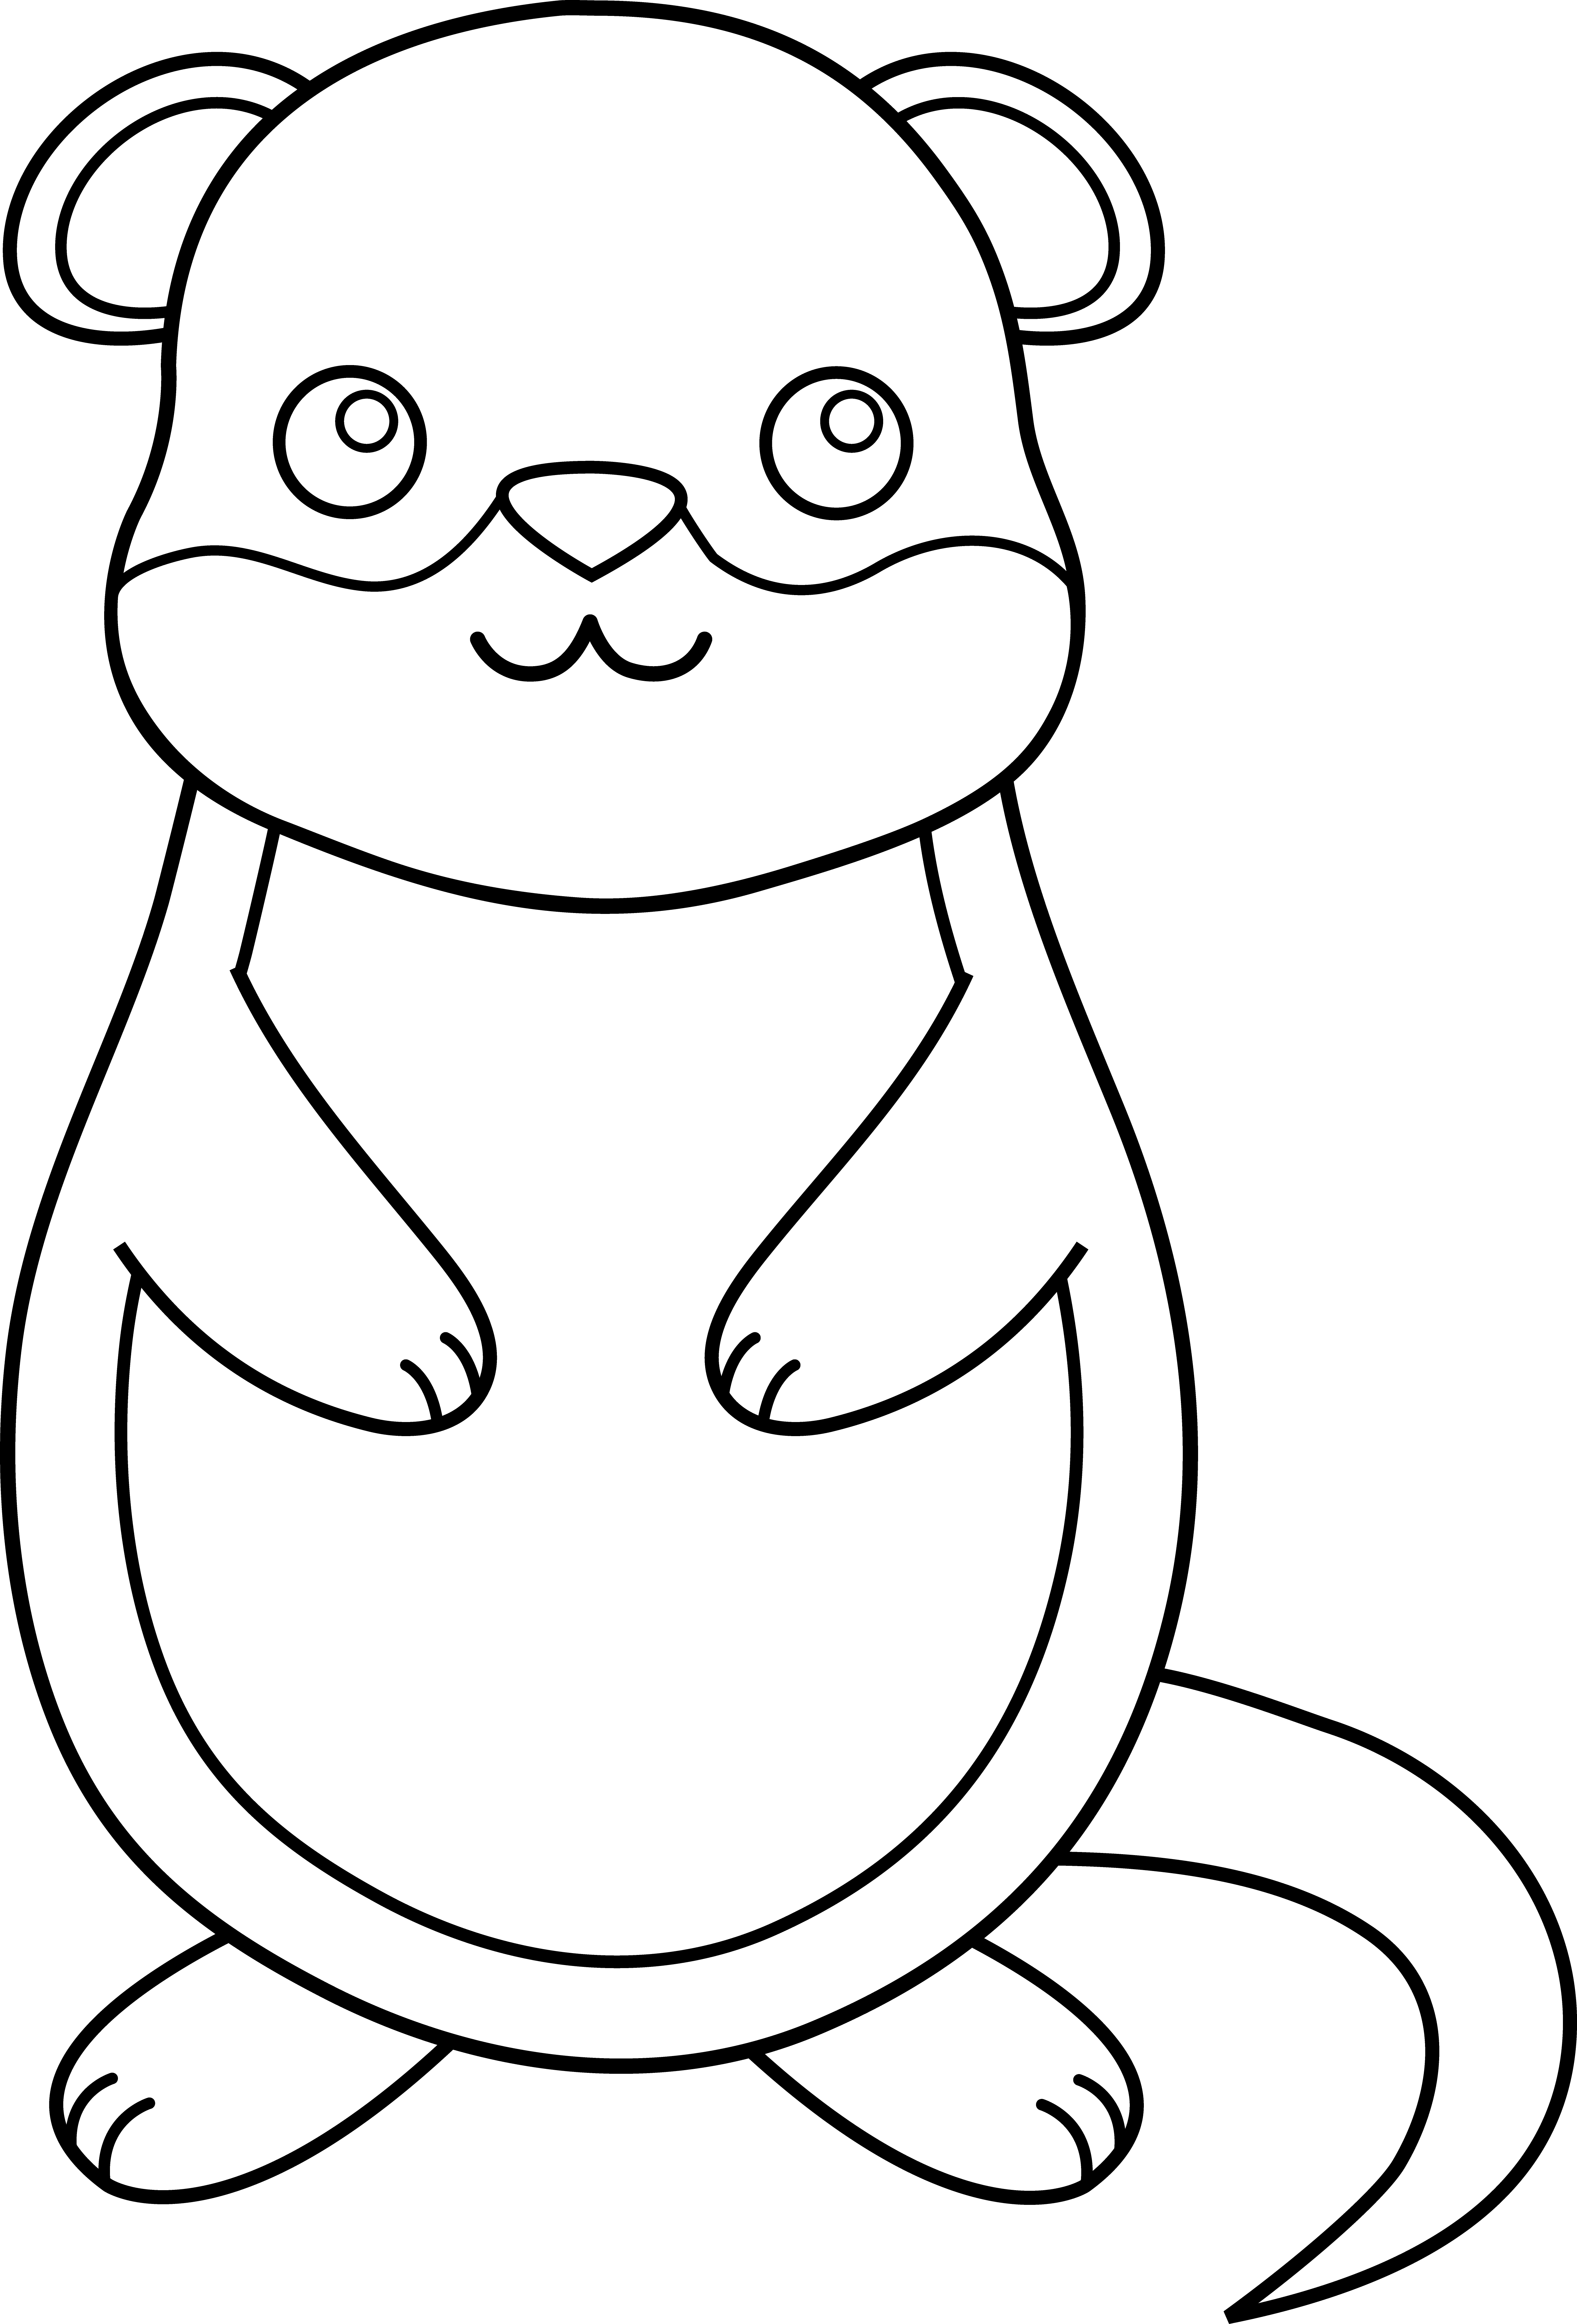 Woodchuck clipart black and white clip freeuse library Free Woodchuck Clipart, Download Free Clip Art, Free Clip ... clip freeuse library